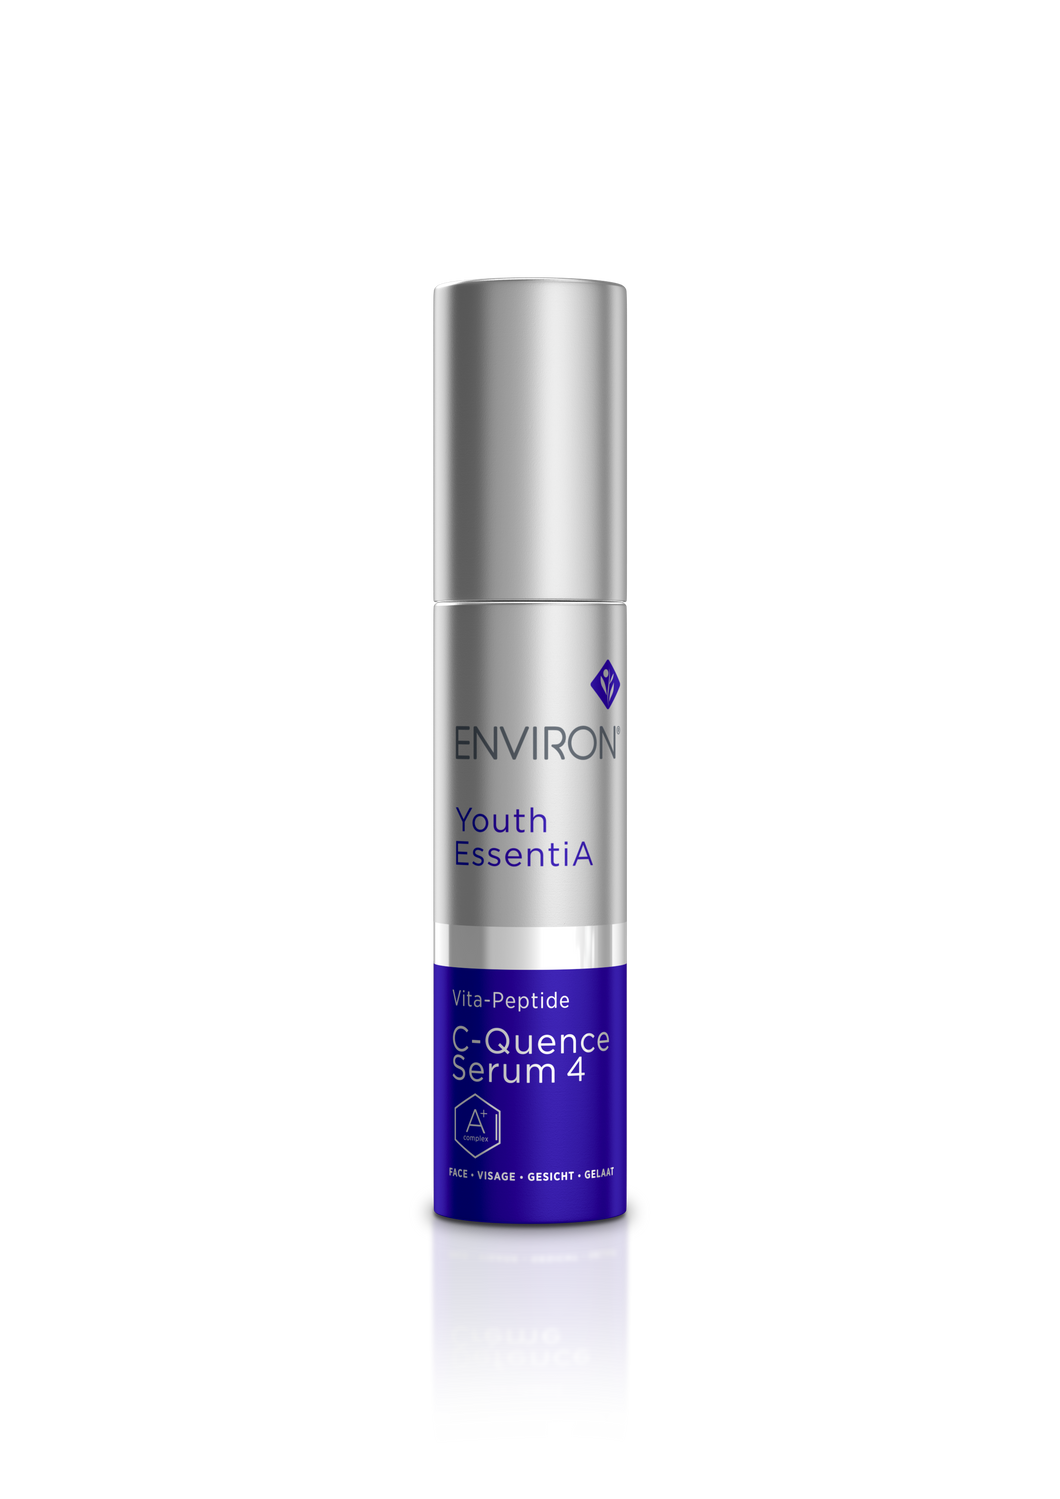 Vita Peptide C-Quence Serums 1-4 and 4 Plus